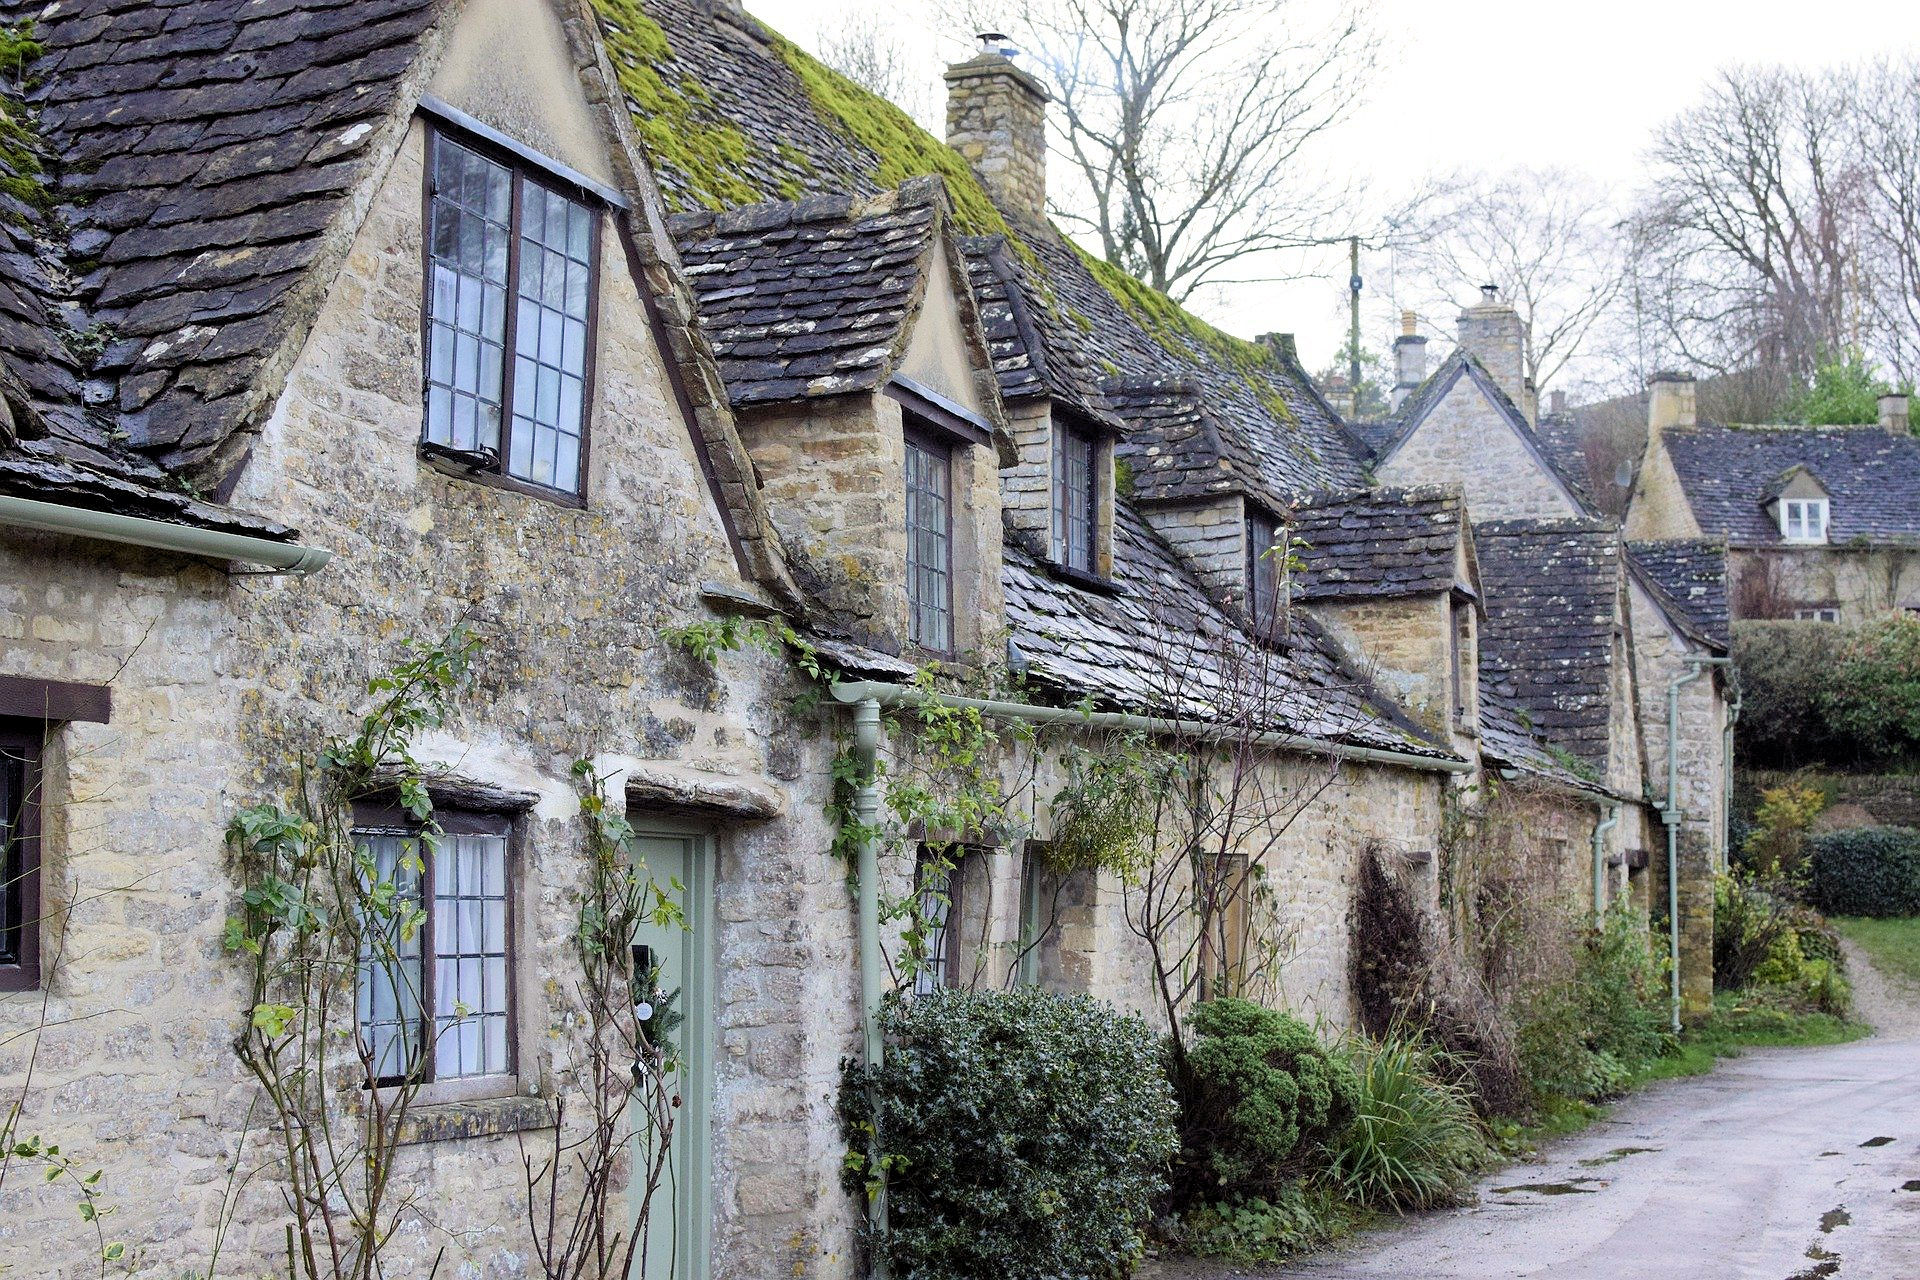 Trekking in the Cotswolds - cottages in Bibury